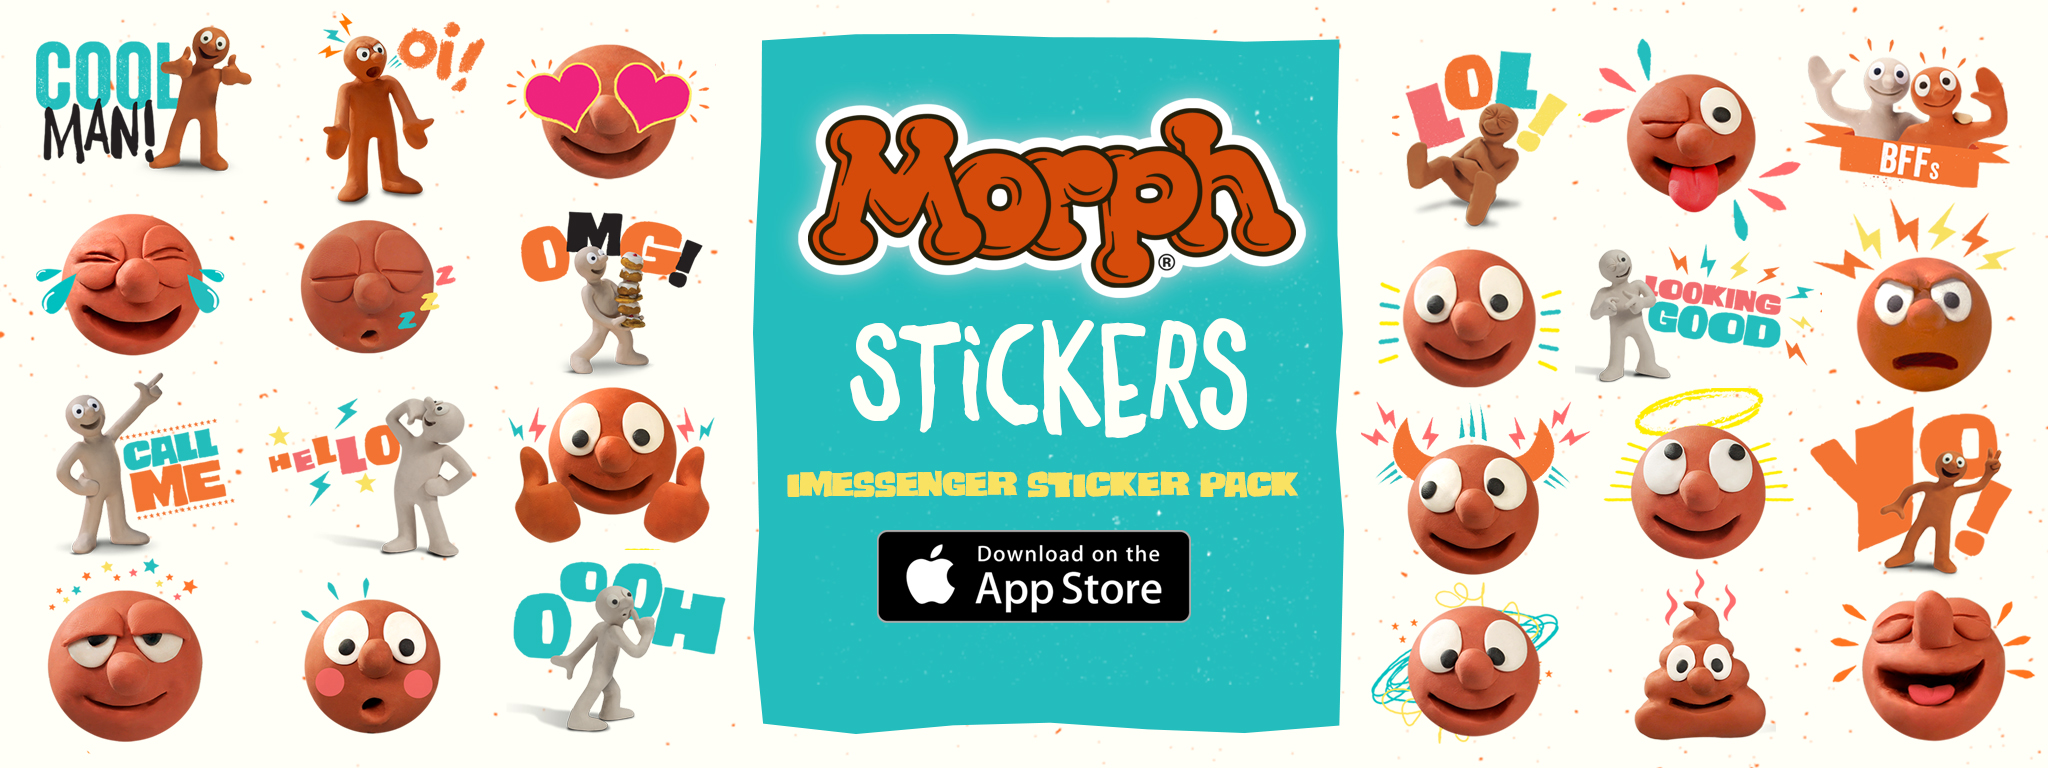 birthday stickers for messenger ; morph_stickers_website